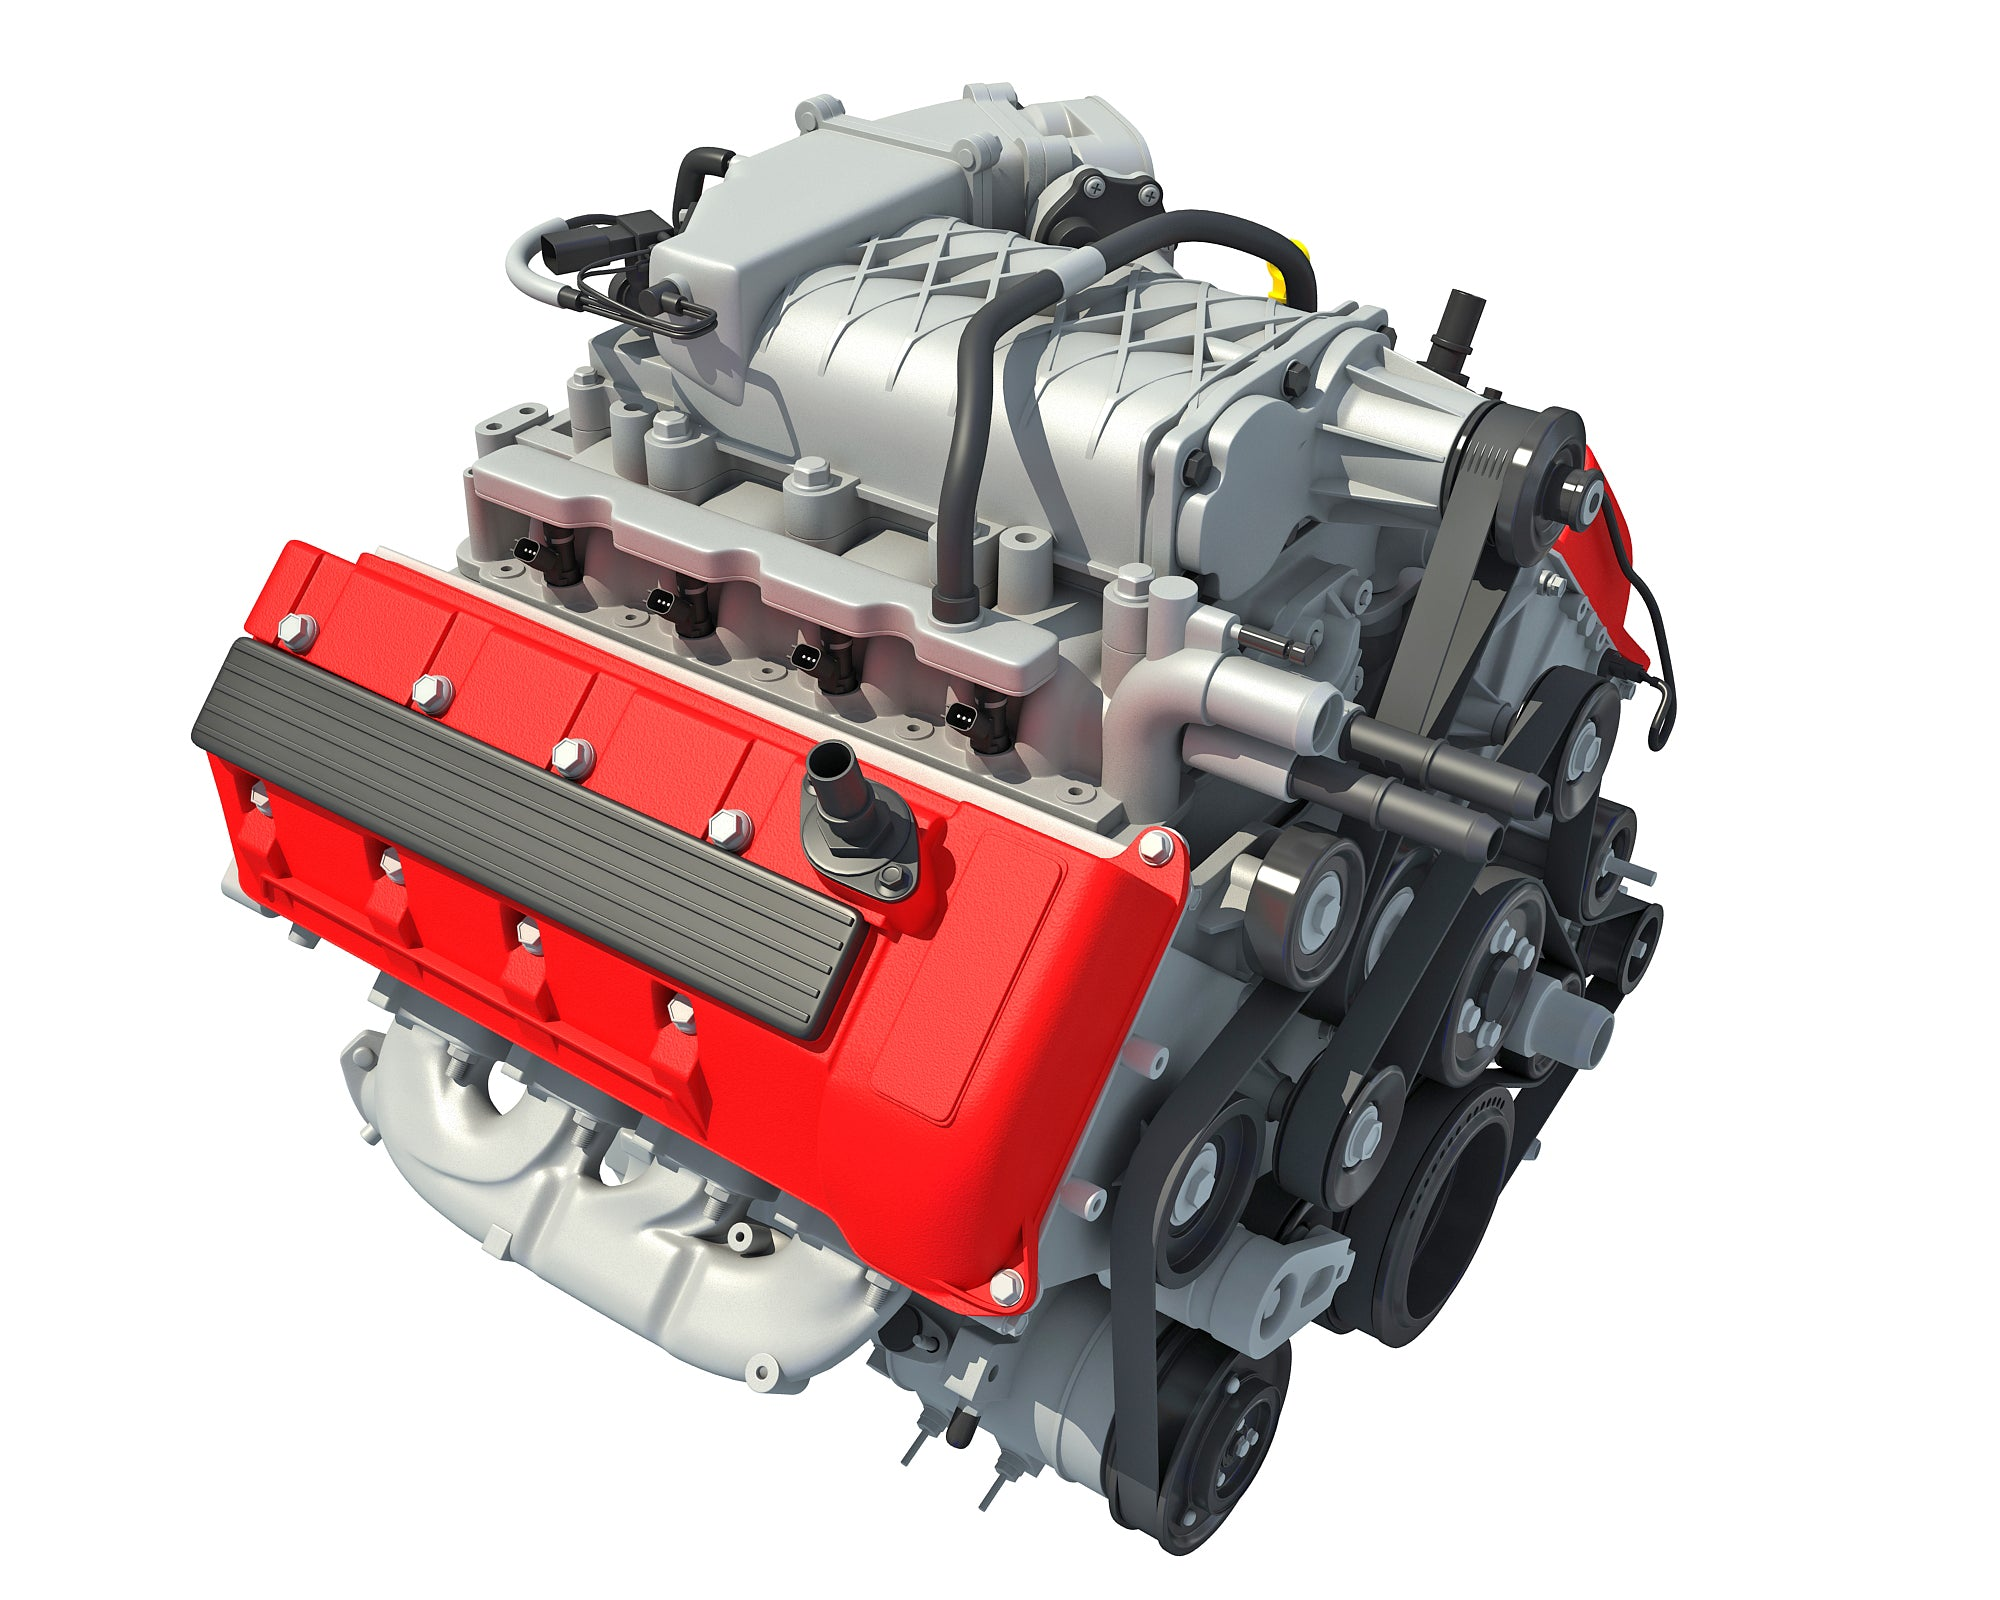 Animated V8 Engine